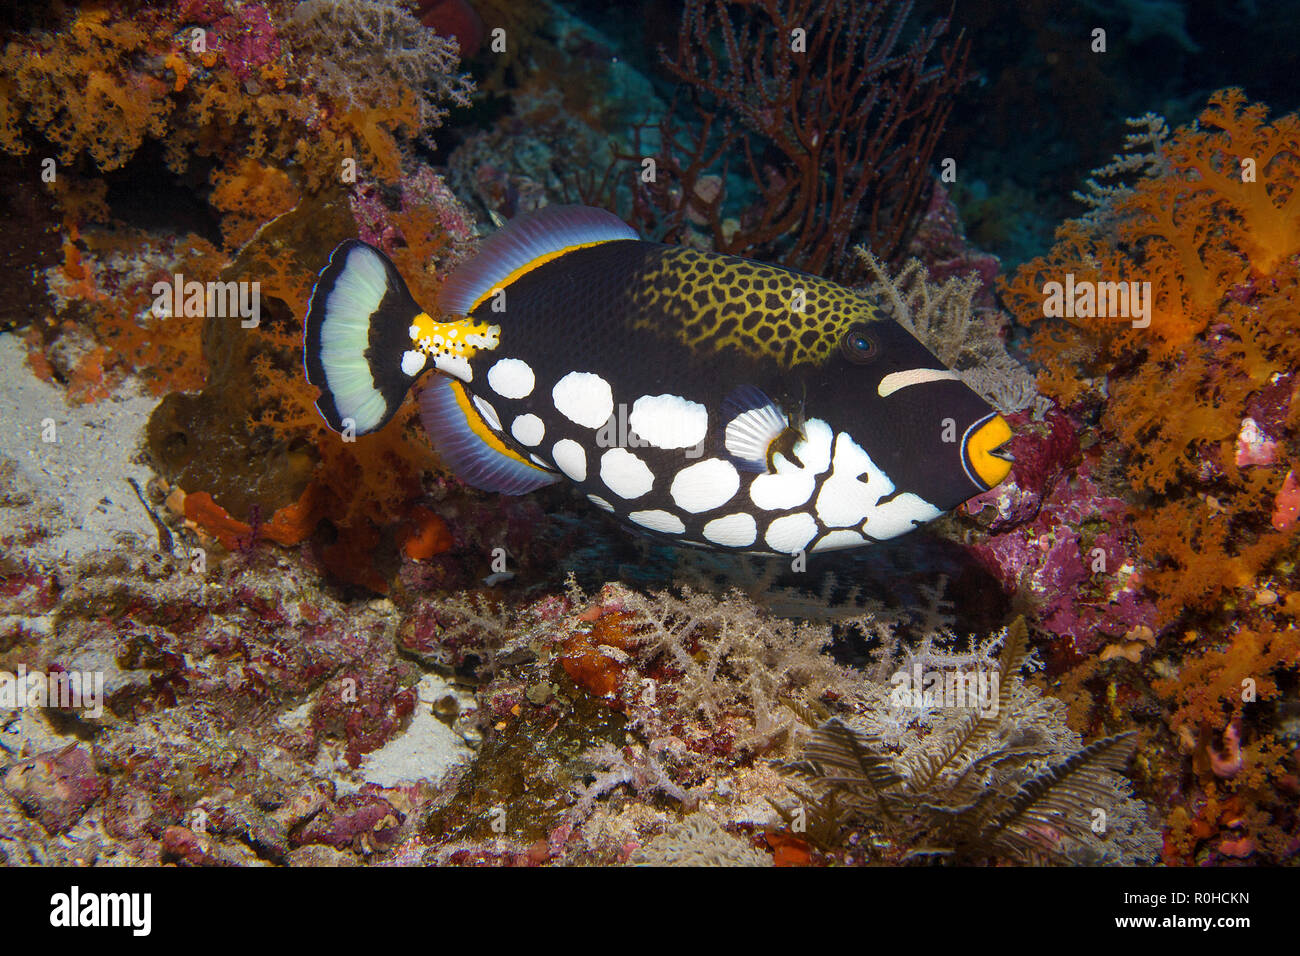 Clown triggerfish (Balistoides conspicillum) at a coral reef, Banda sea, Indonesia - Stock Image